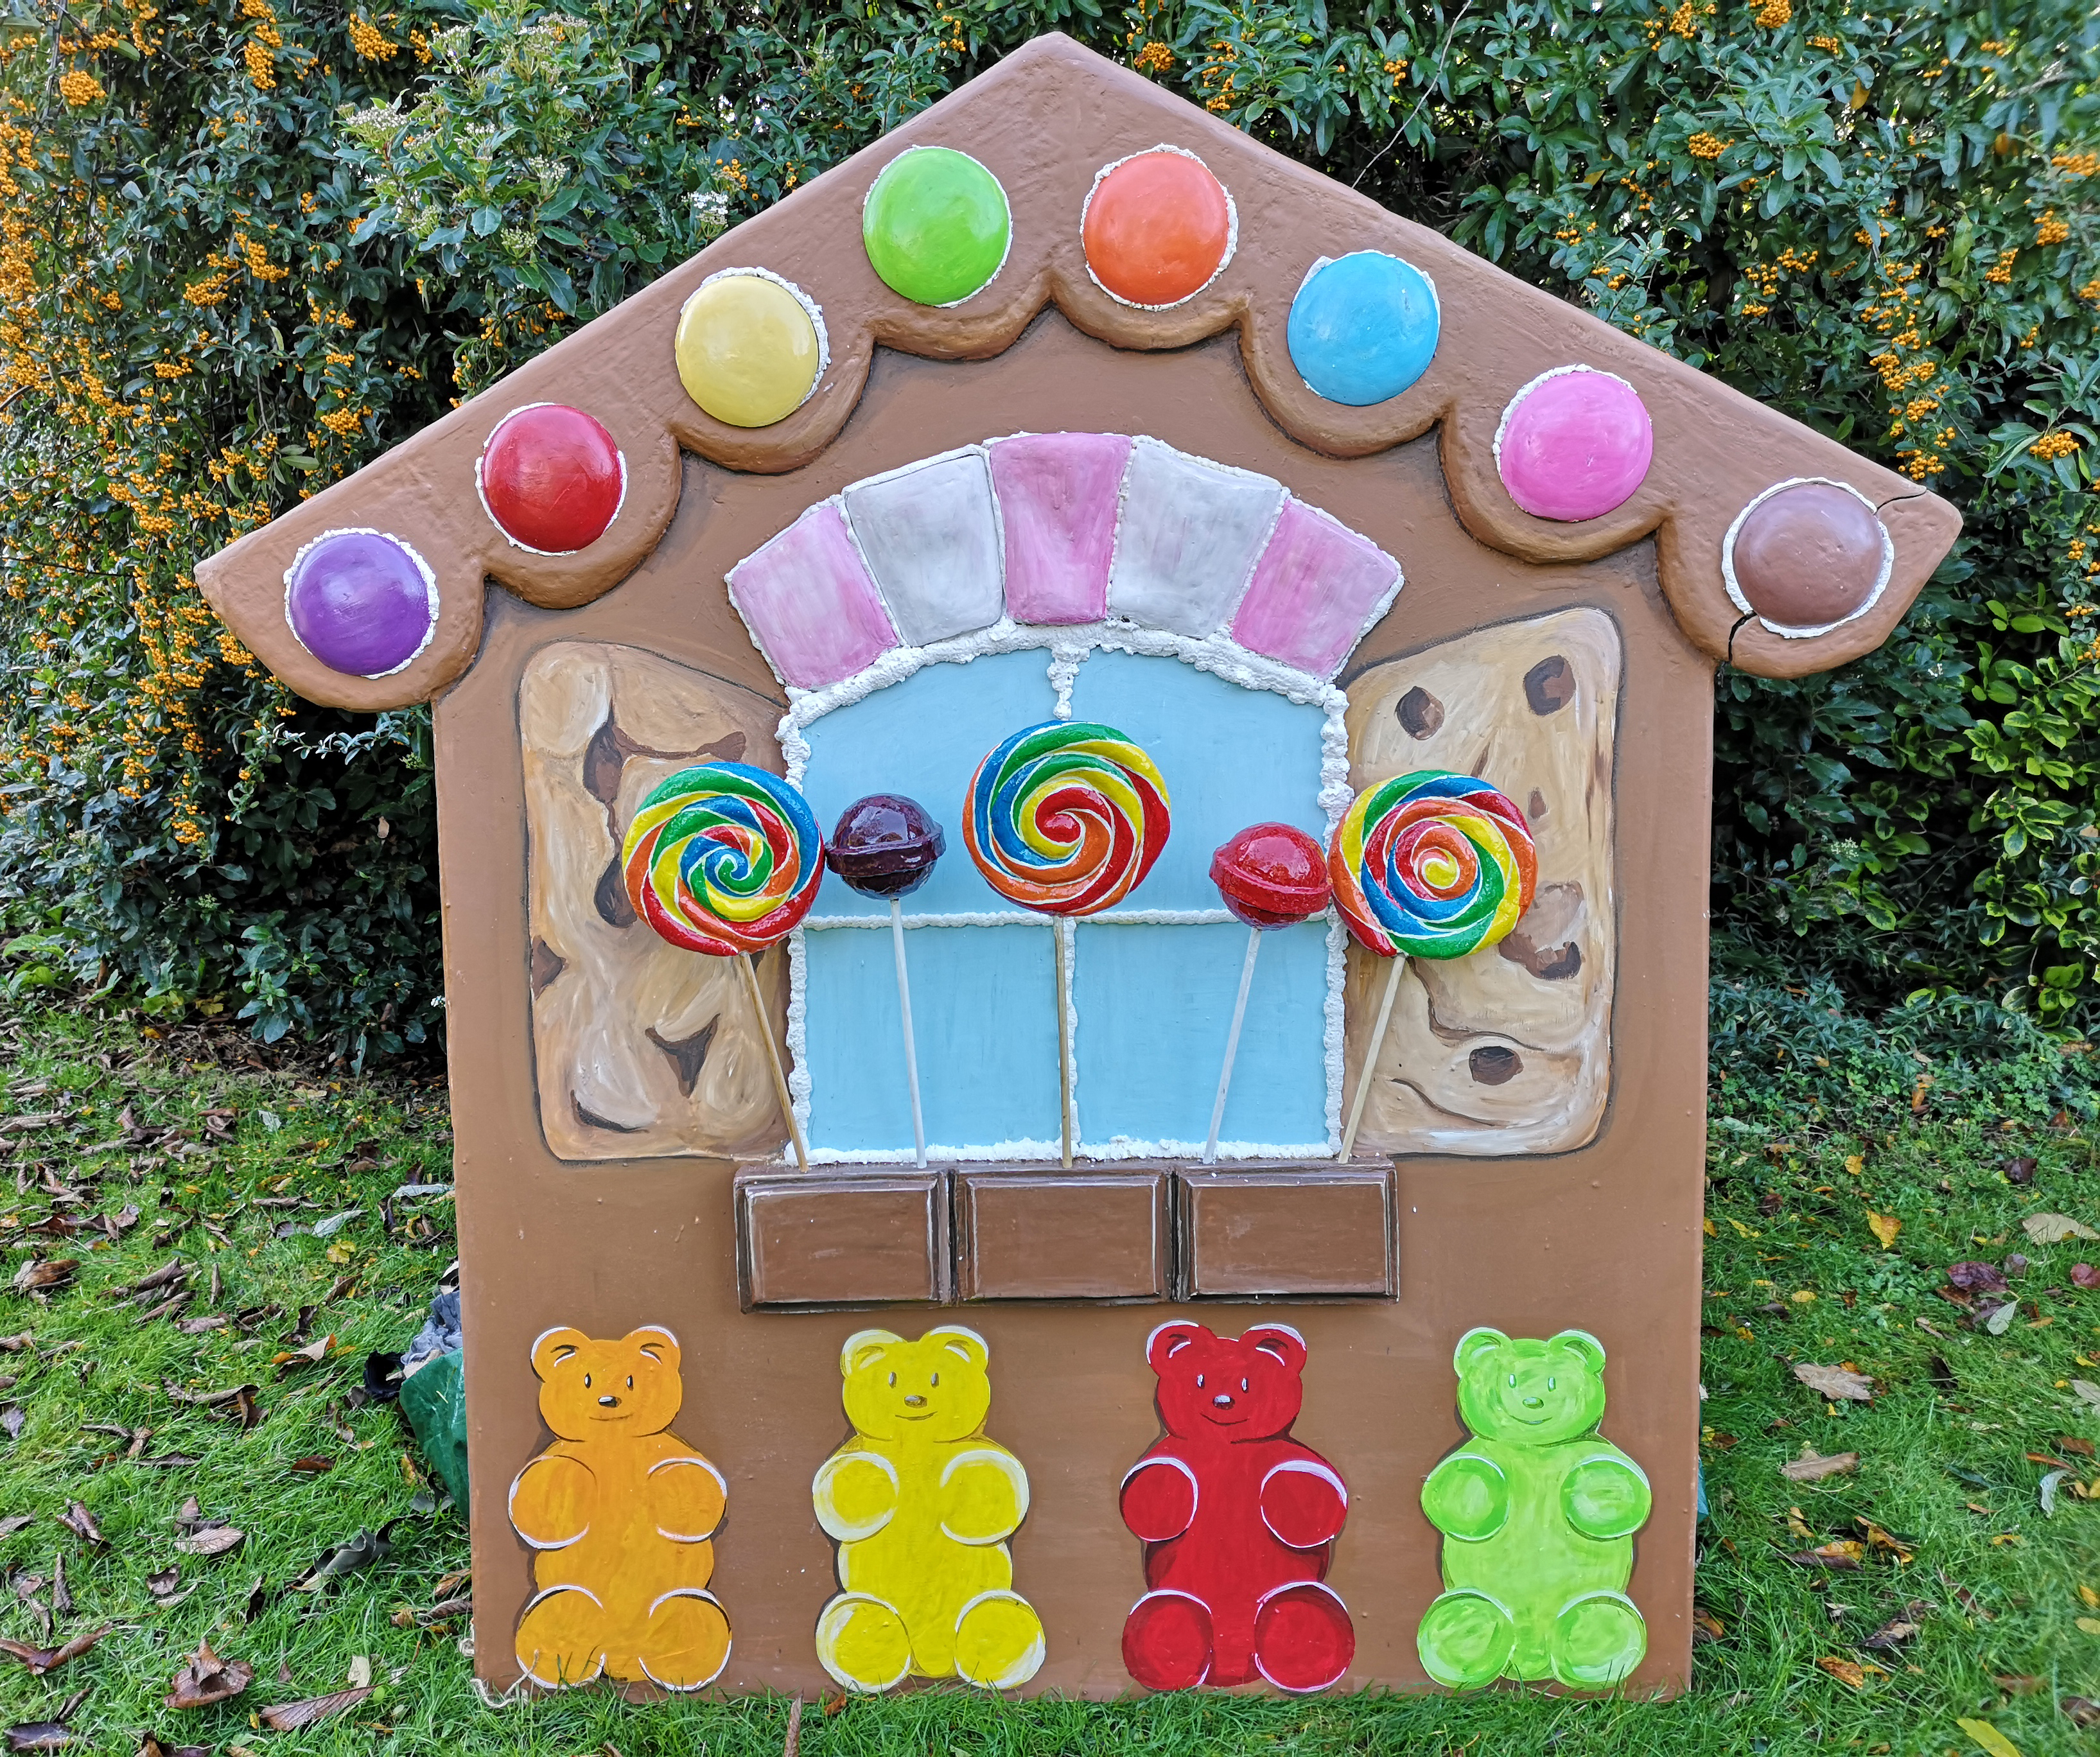 A house made of cookies and sweeties and cakes!